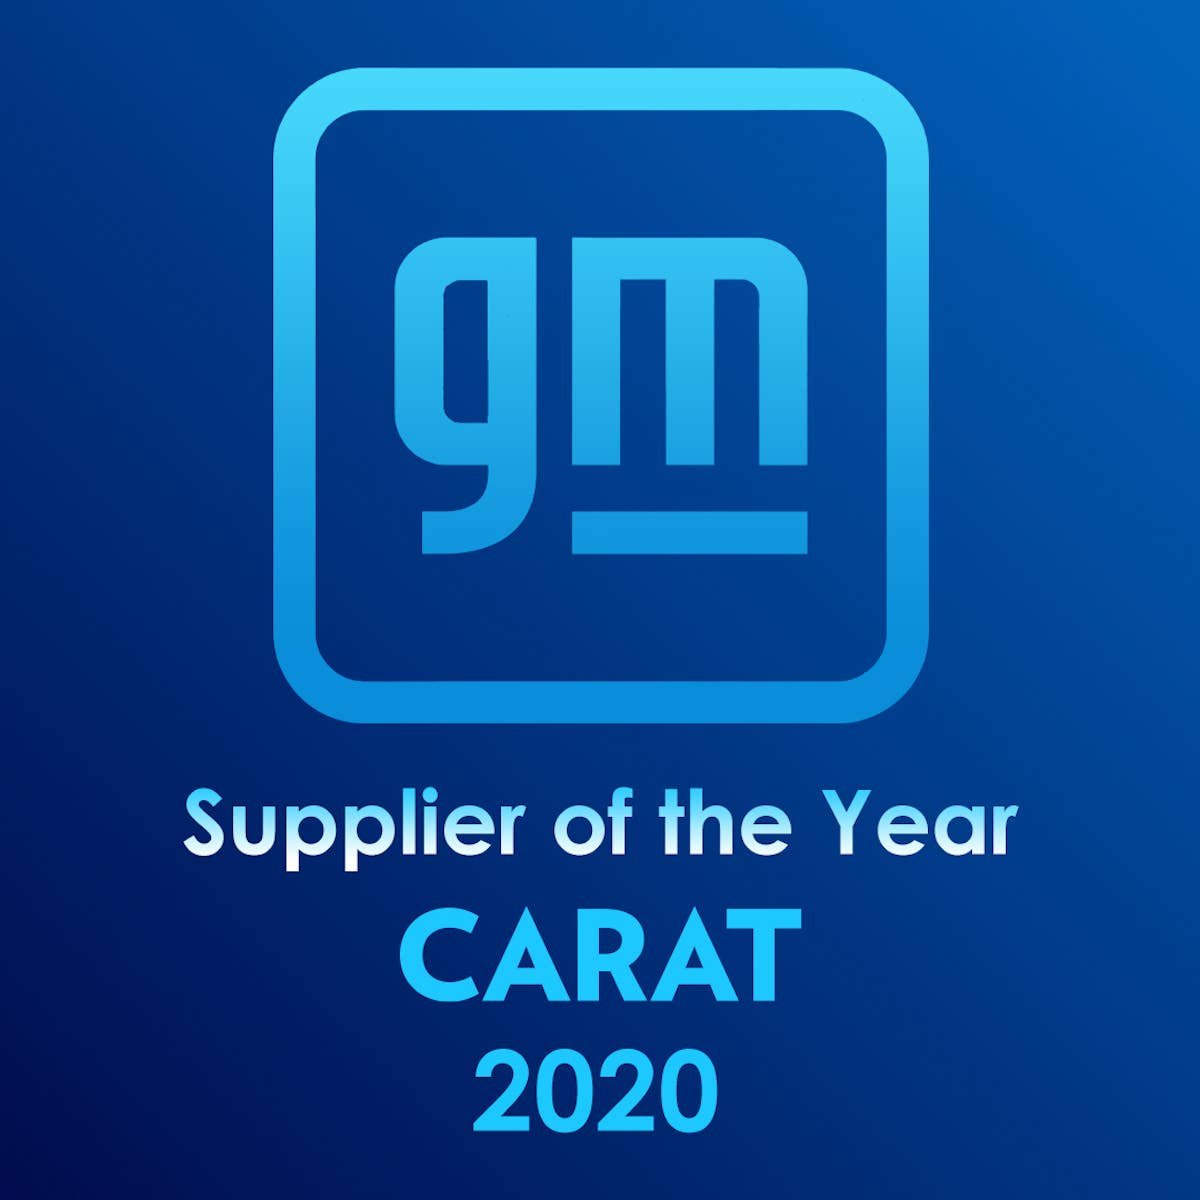 Carat Named a 2020 Supplier of the Year Winner by General Motors